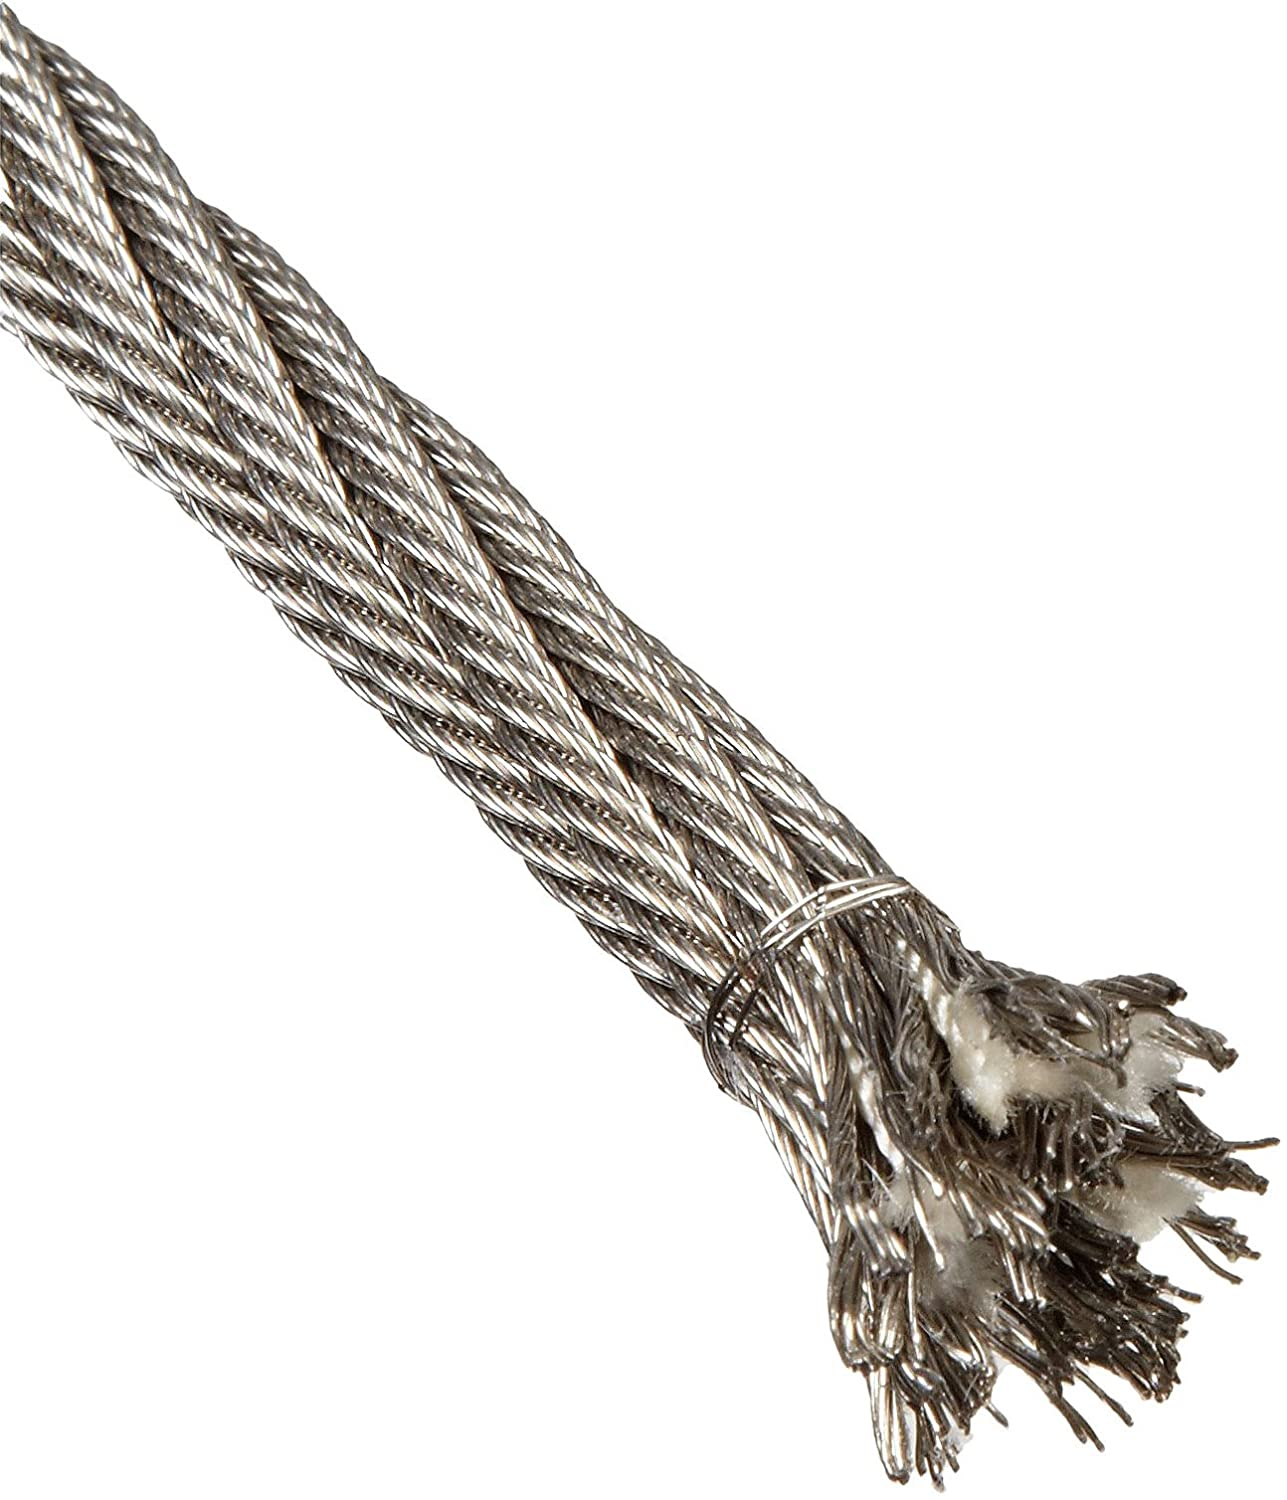 Loos Stainless Steel 302/304 Wire Rope, 6x42 Fiber Core: Cable And ...